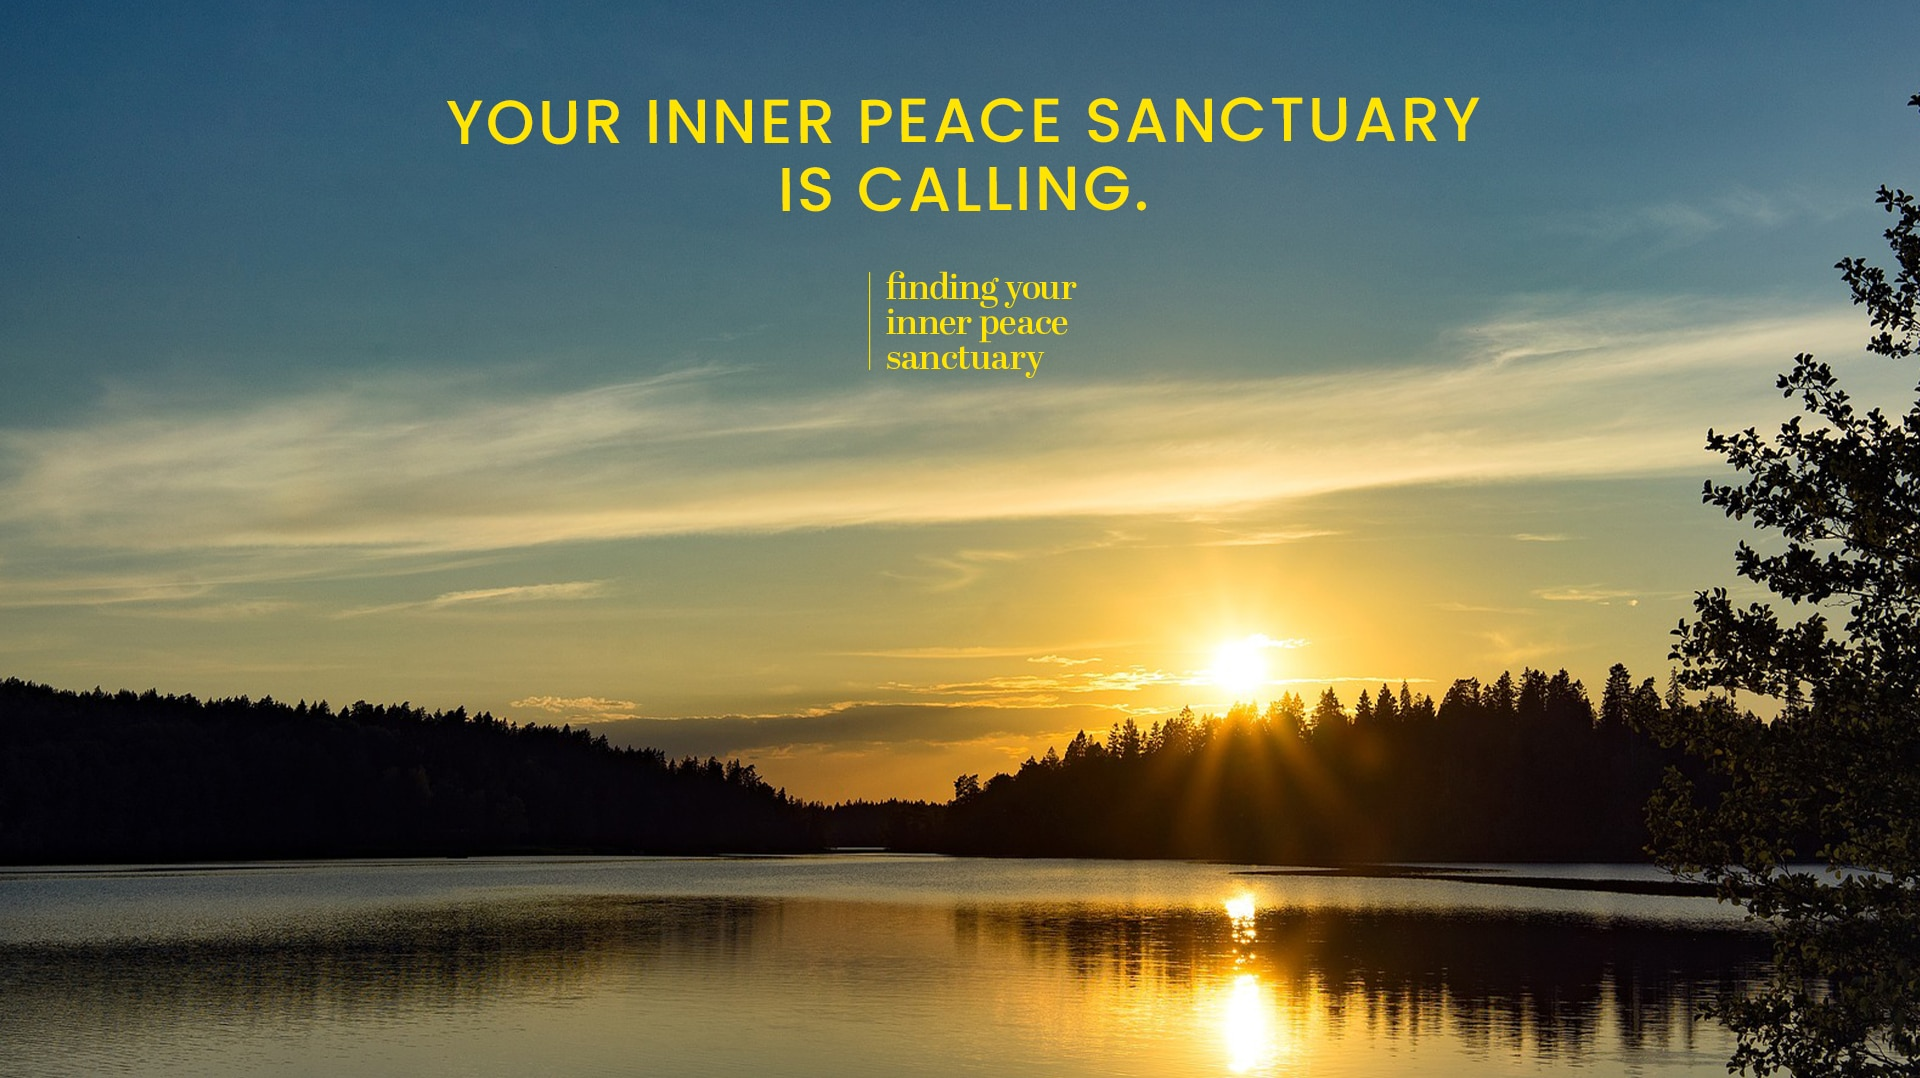 Parvati Foundation Finding Your Inner Peace Sanctuary Calling